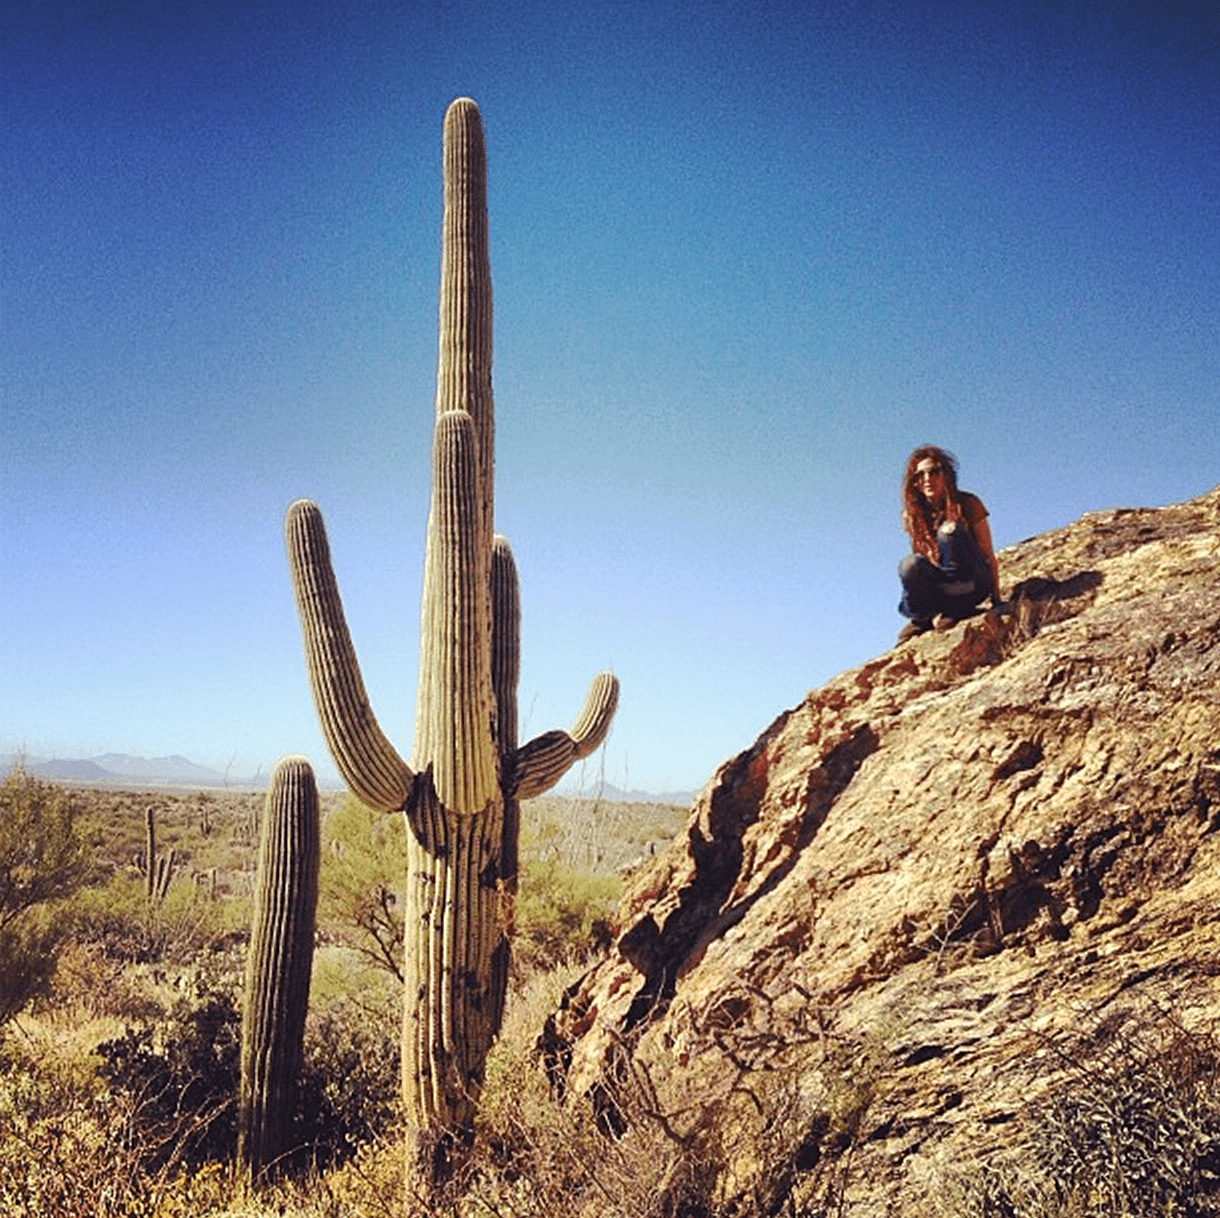 a woman crouches on a cliff beside a saguaro tree